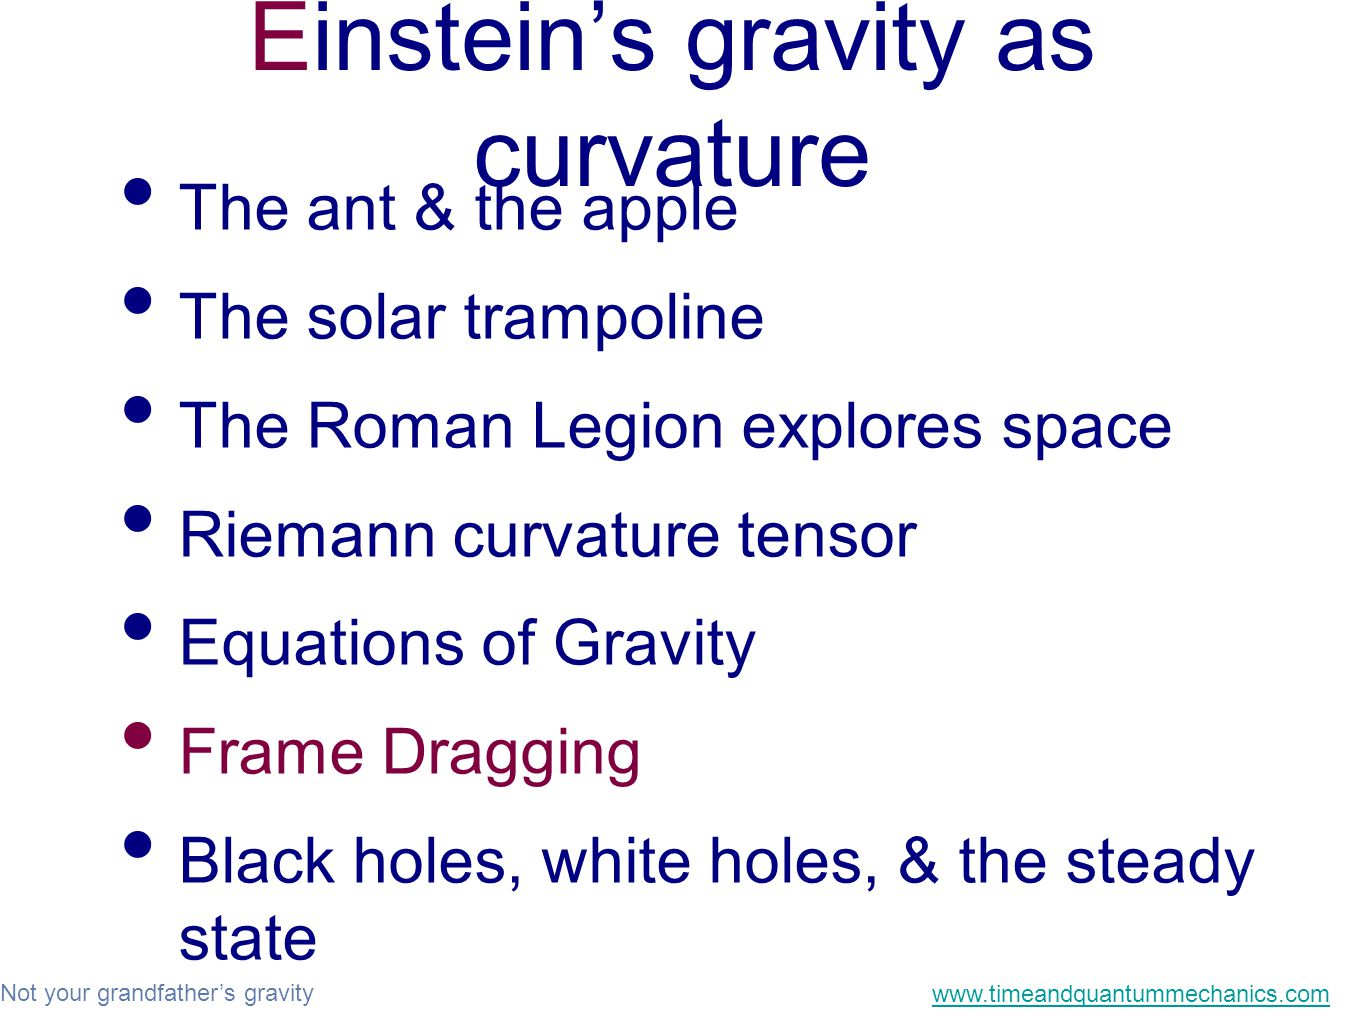 Not your grandfather's gravity www.timeandquantummechanics.com Einstein's gravity as curvature The ant & the apple The solar trampoline The Roman Legion explores space Riemann curvature tensor Equations of Gravity Frame Dragging Black holes, white holes, & the steady state